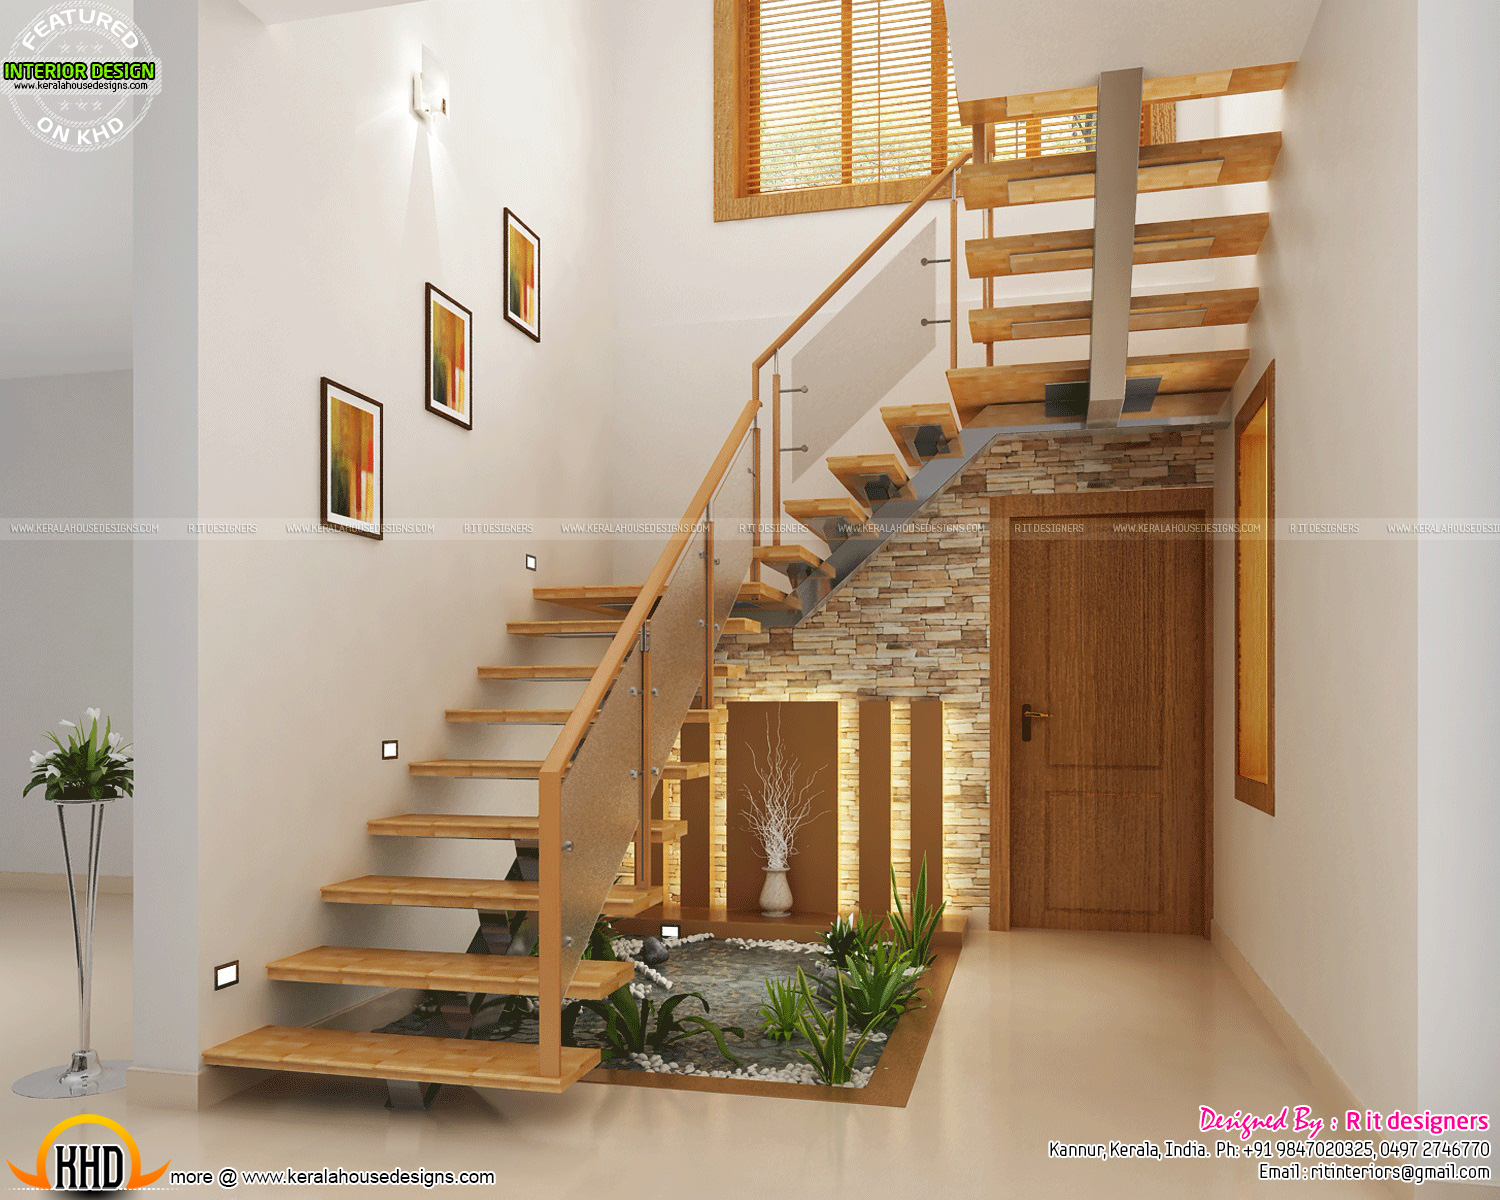 under stair design wooden stair kitchen and living kitchen designs with cherry wood cabinets home design ideas